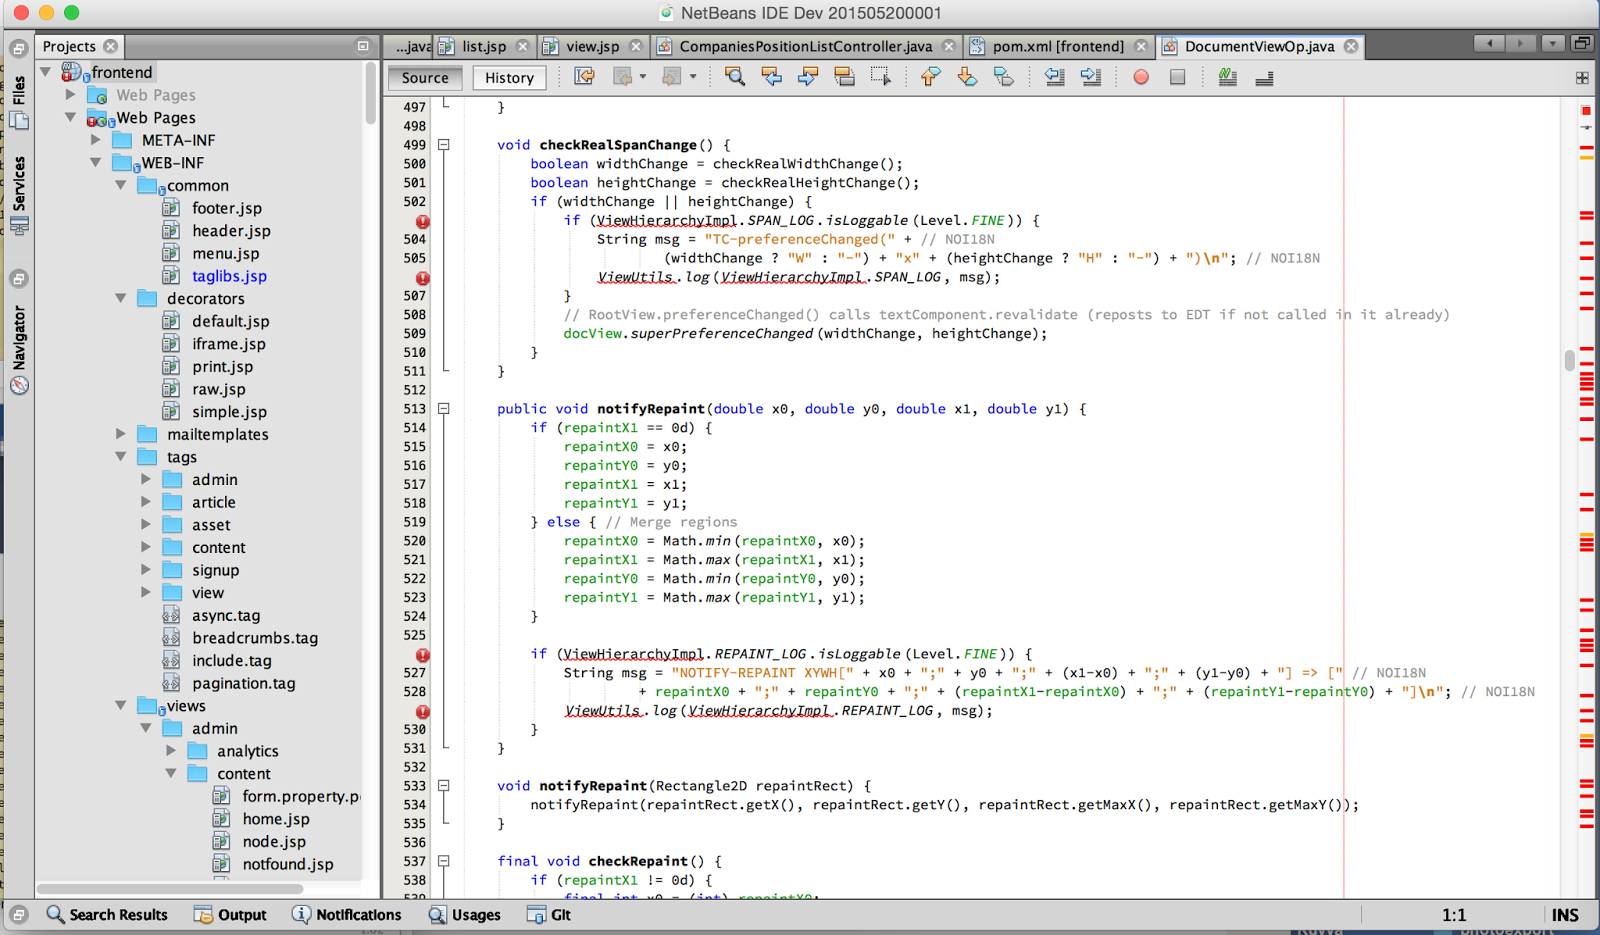 nothome com: Subpixel font rendering with Netbeans on OSX